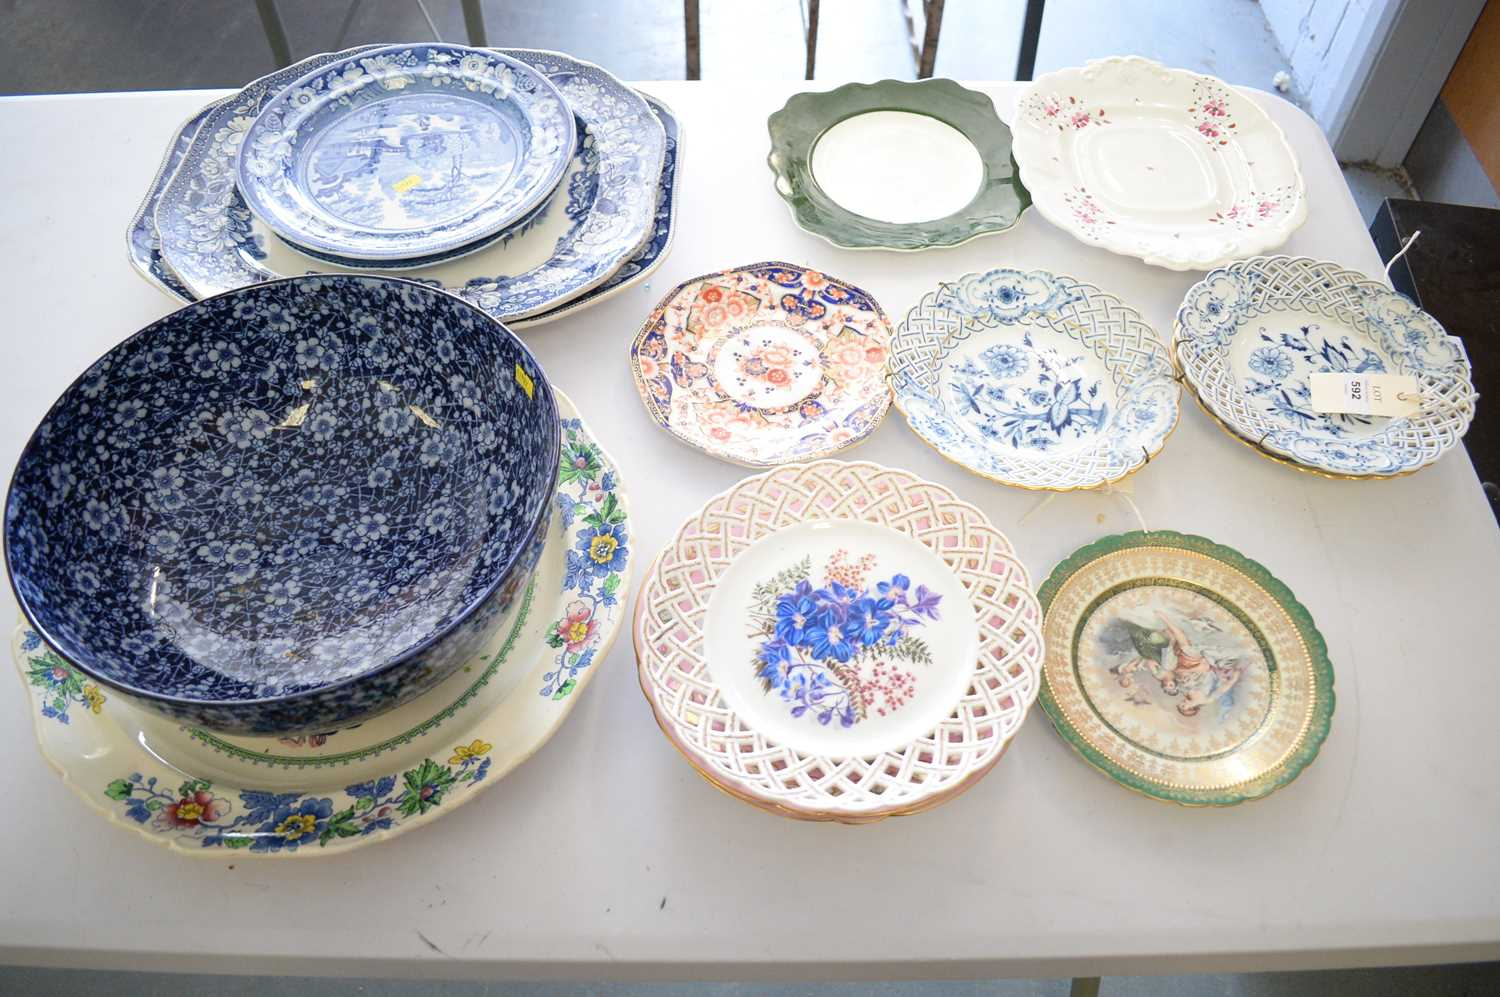 Ceramics by Doulton, Masons and others. - Image 2 of 3